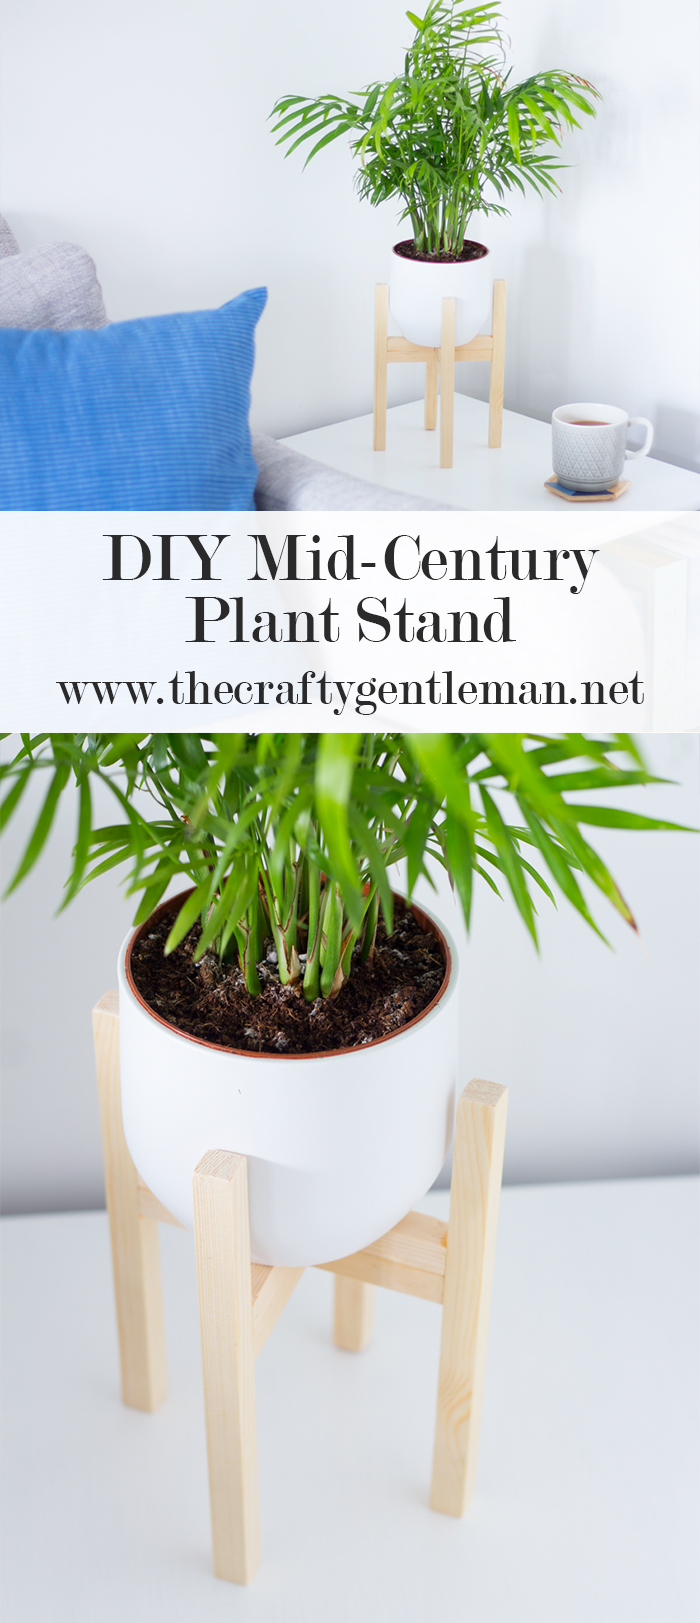 Diy Mid Century Plant Pot Easy Wood Crafts The Crafty Gentleman